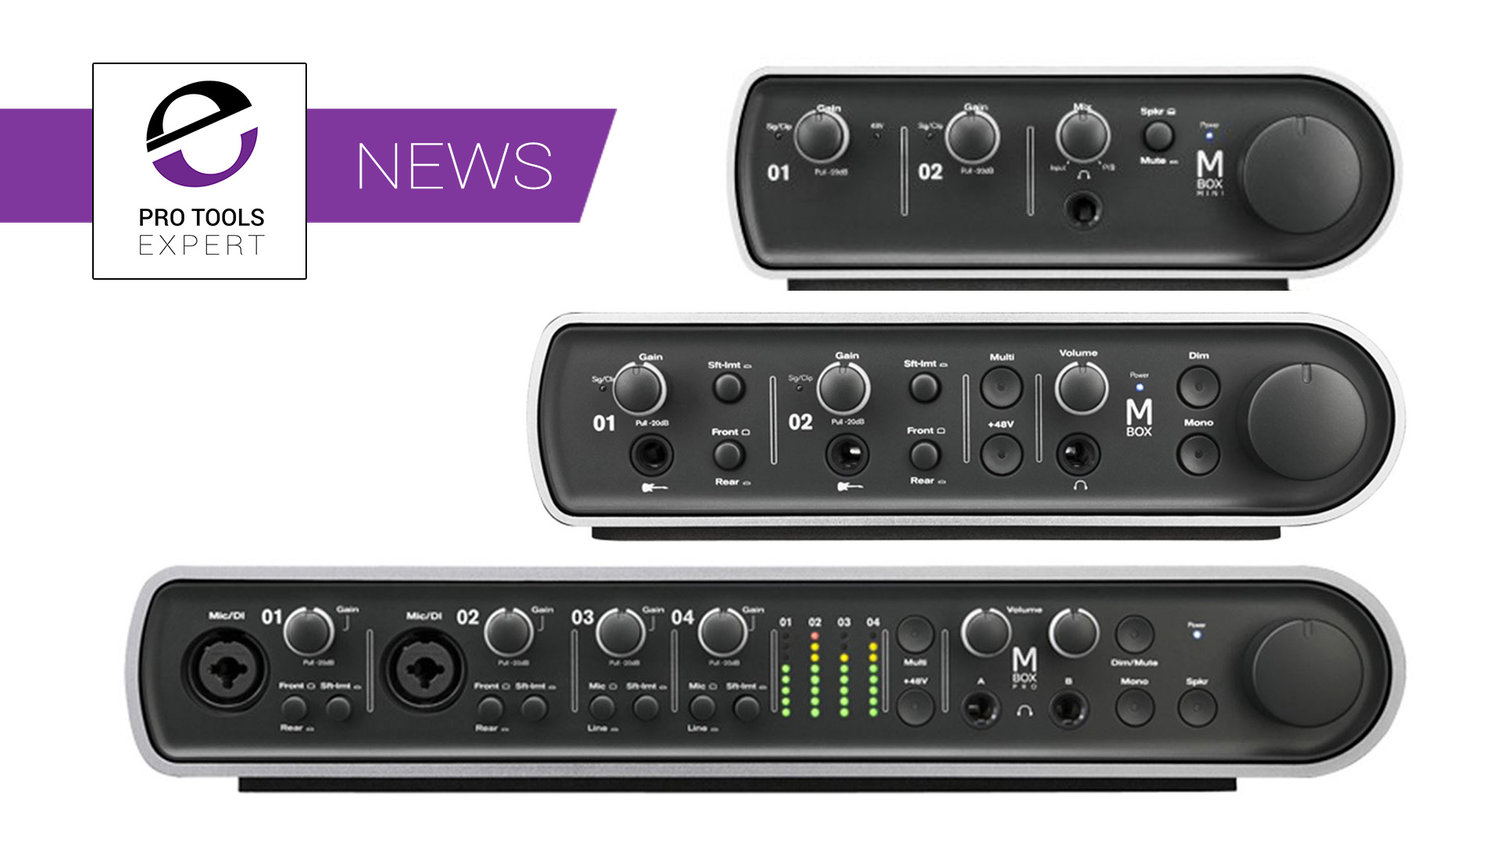 Pro Tools Has Avid Quietly Discontinued The Mbox 3 If So